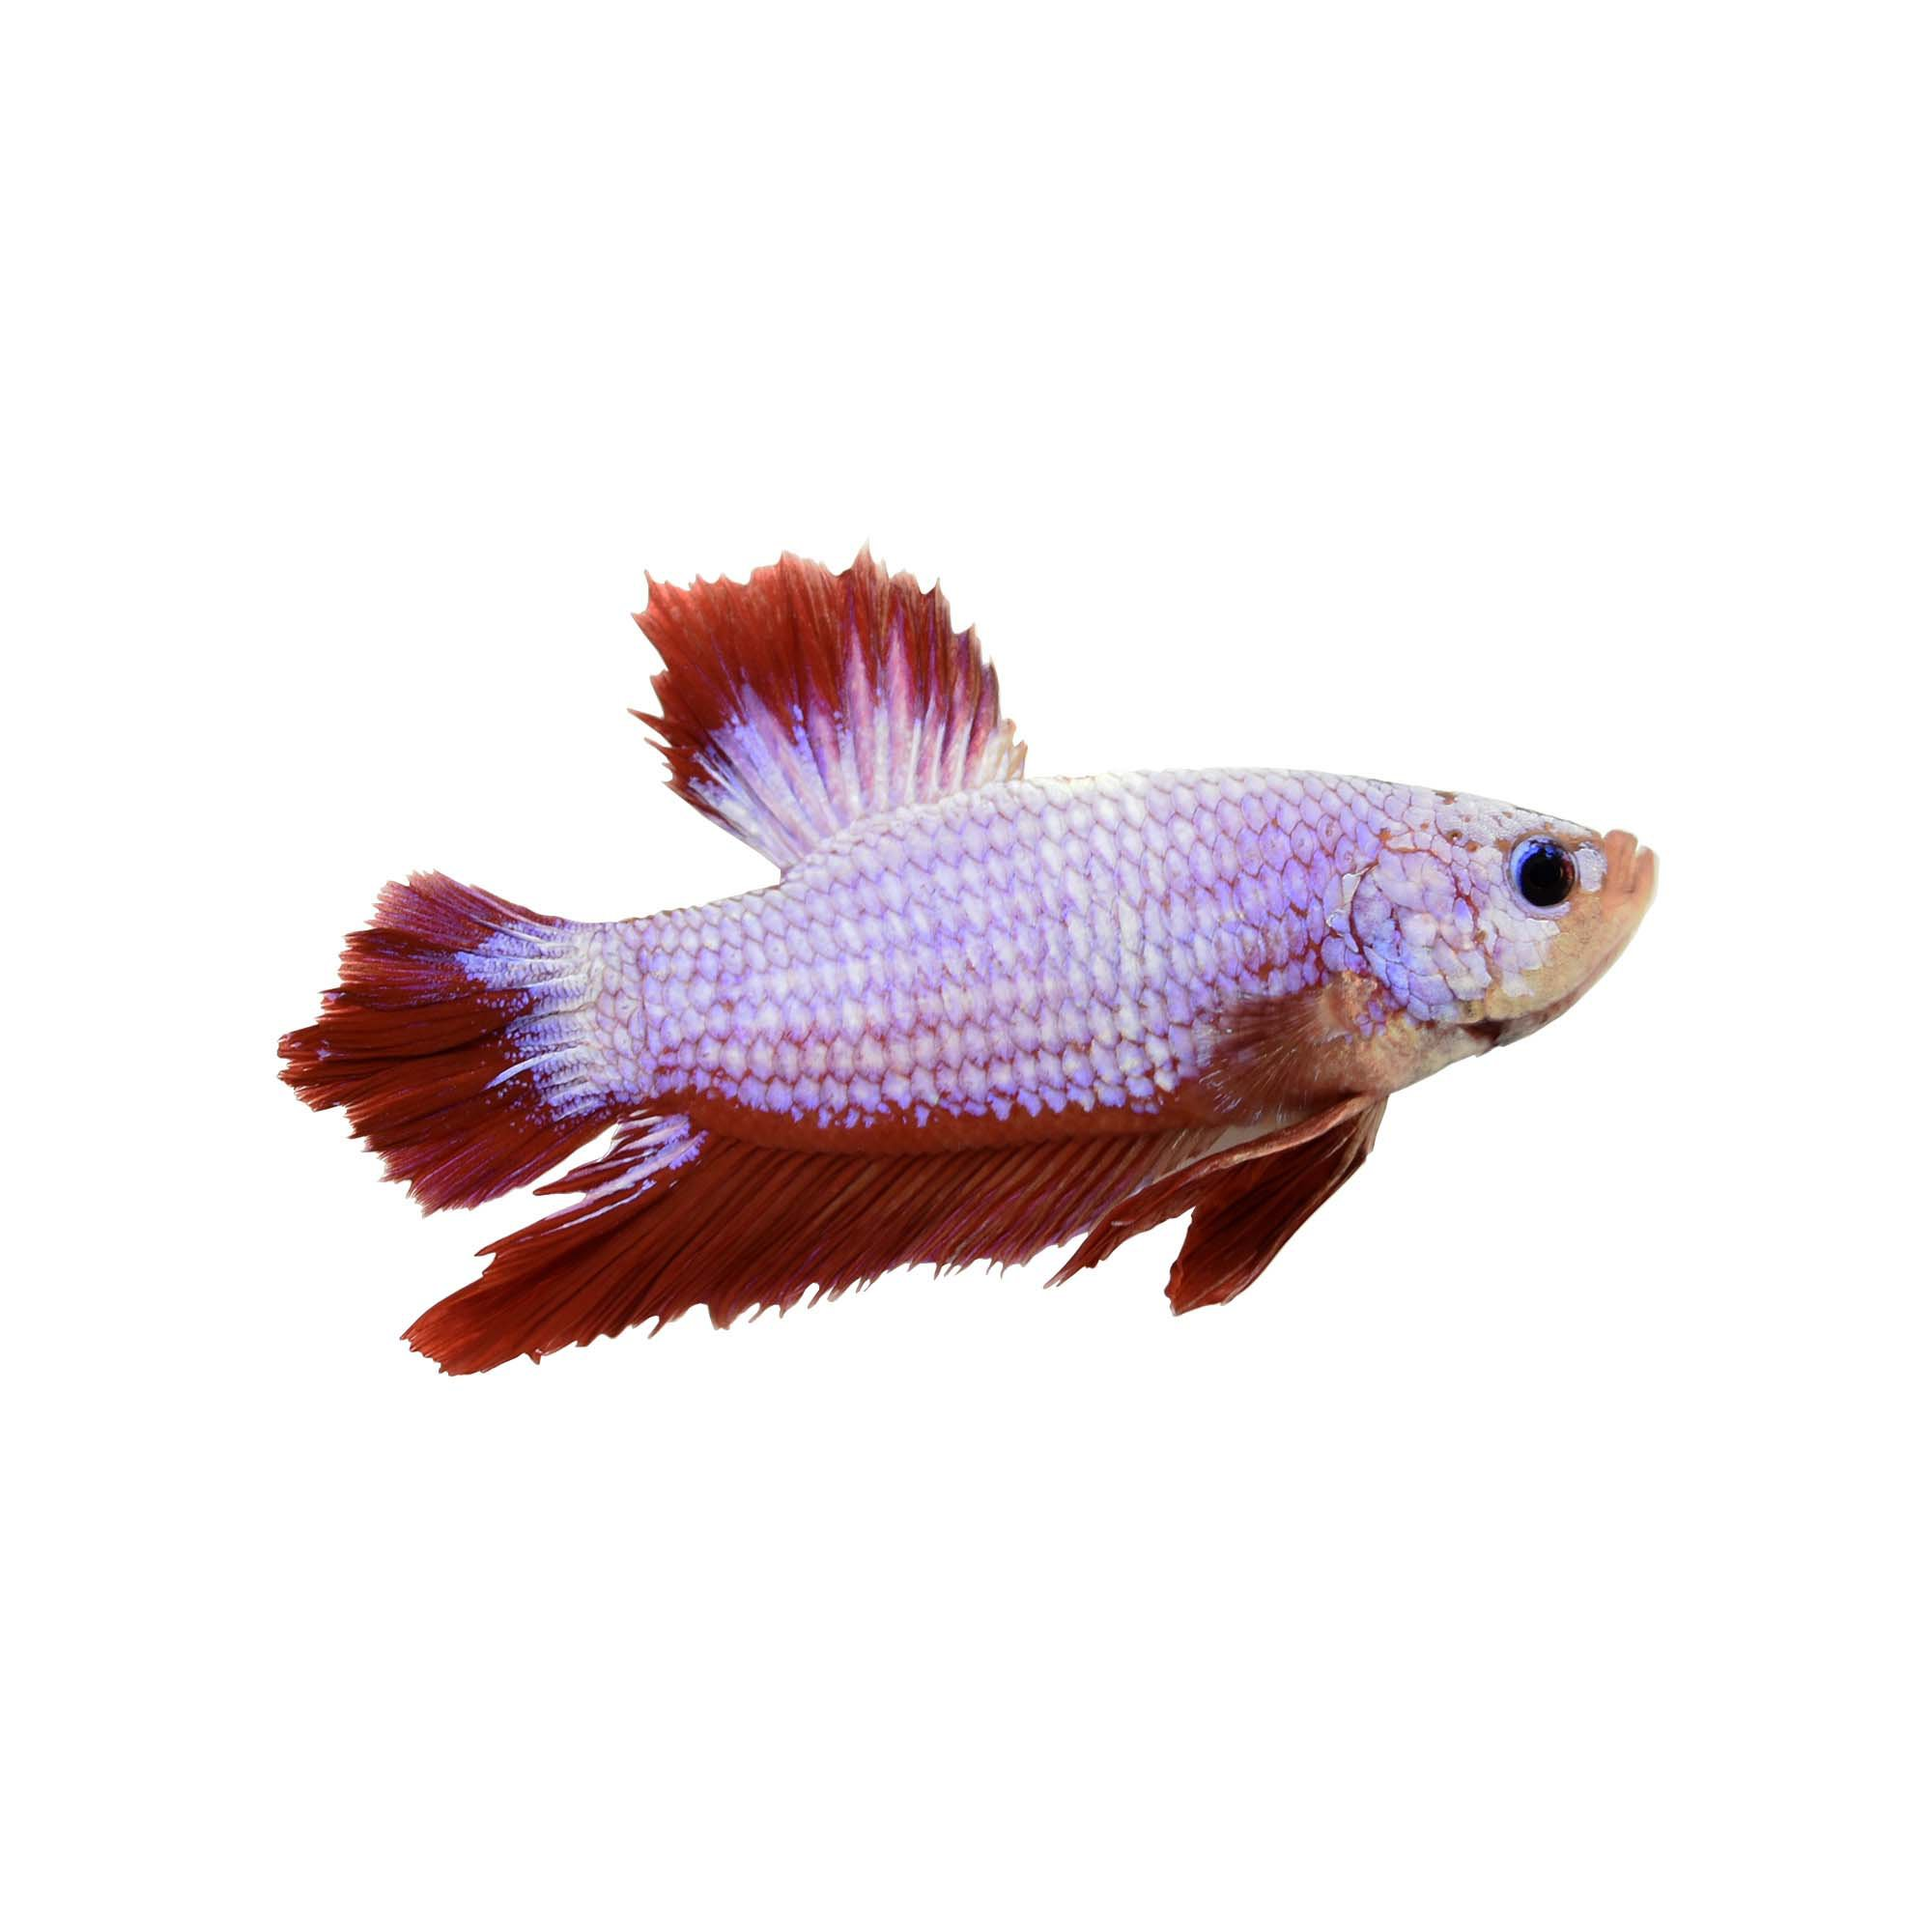 Male halfmoon plakat betta fish petco for Betta fish tanks petco